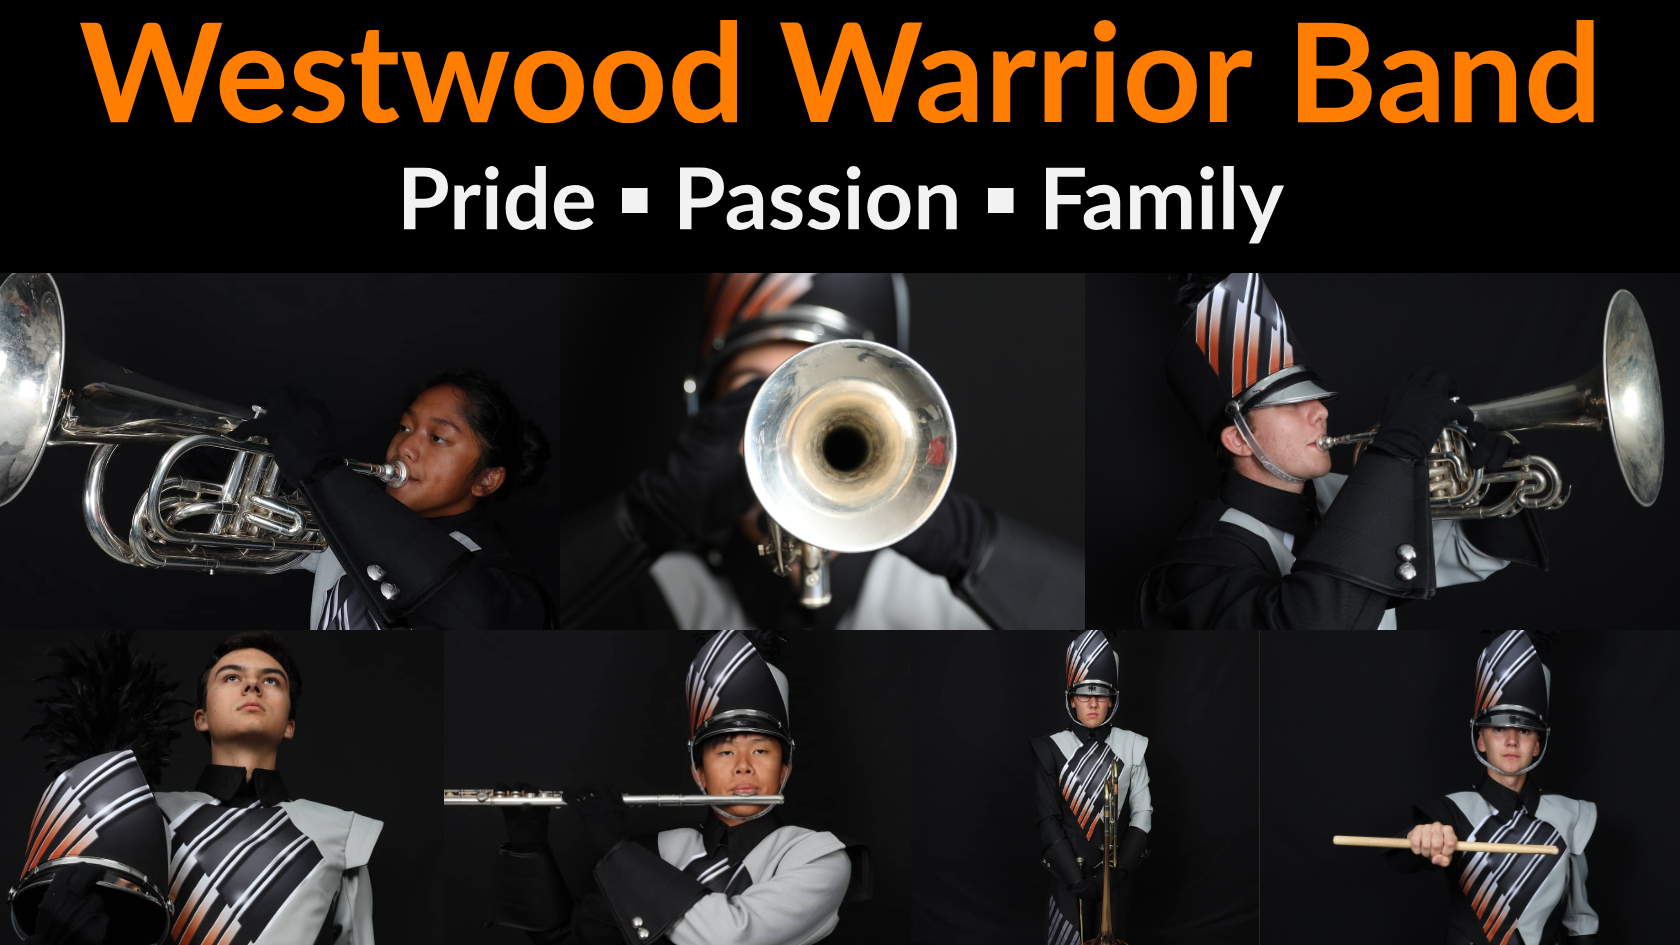 WestwoodWarriorBand_website